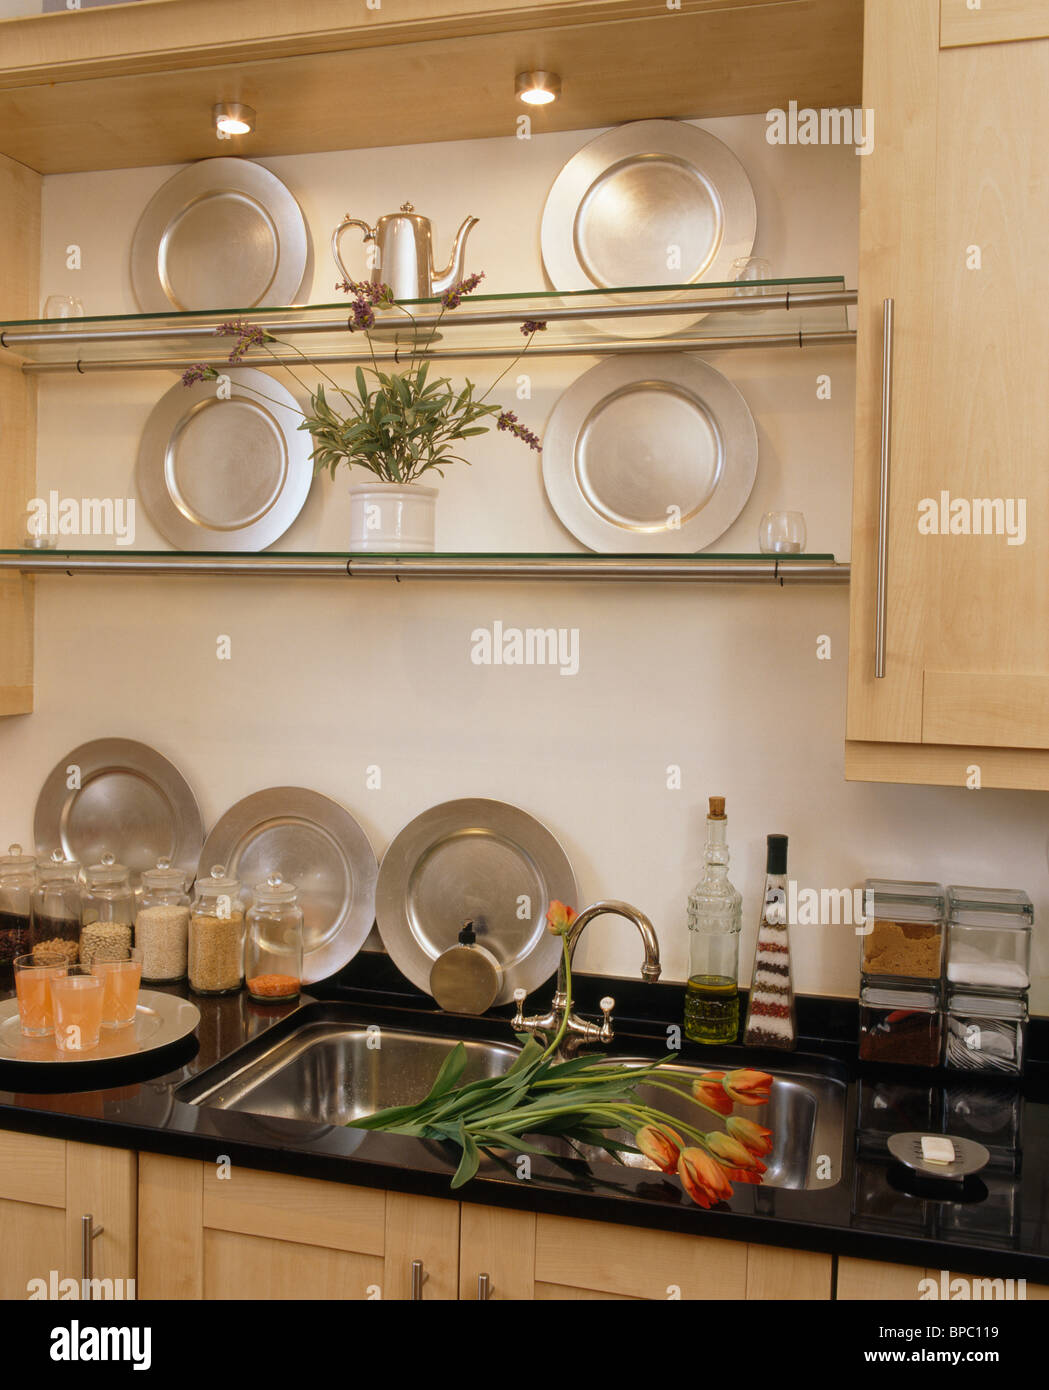 https www alamy com stock photo collection of pewter plates on glass shelves above double sink in 30997045 html